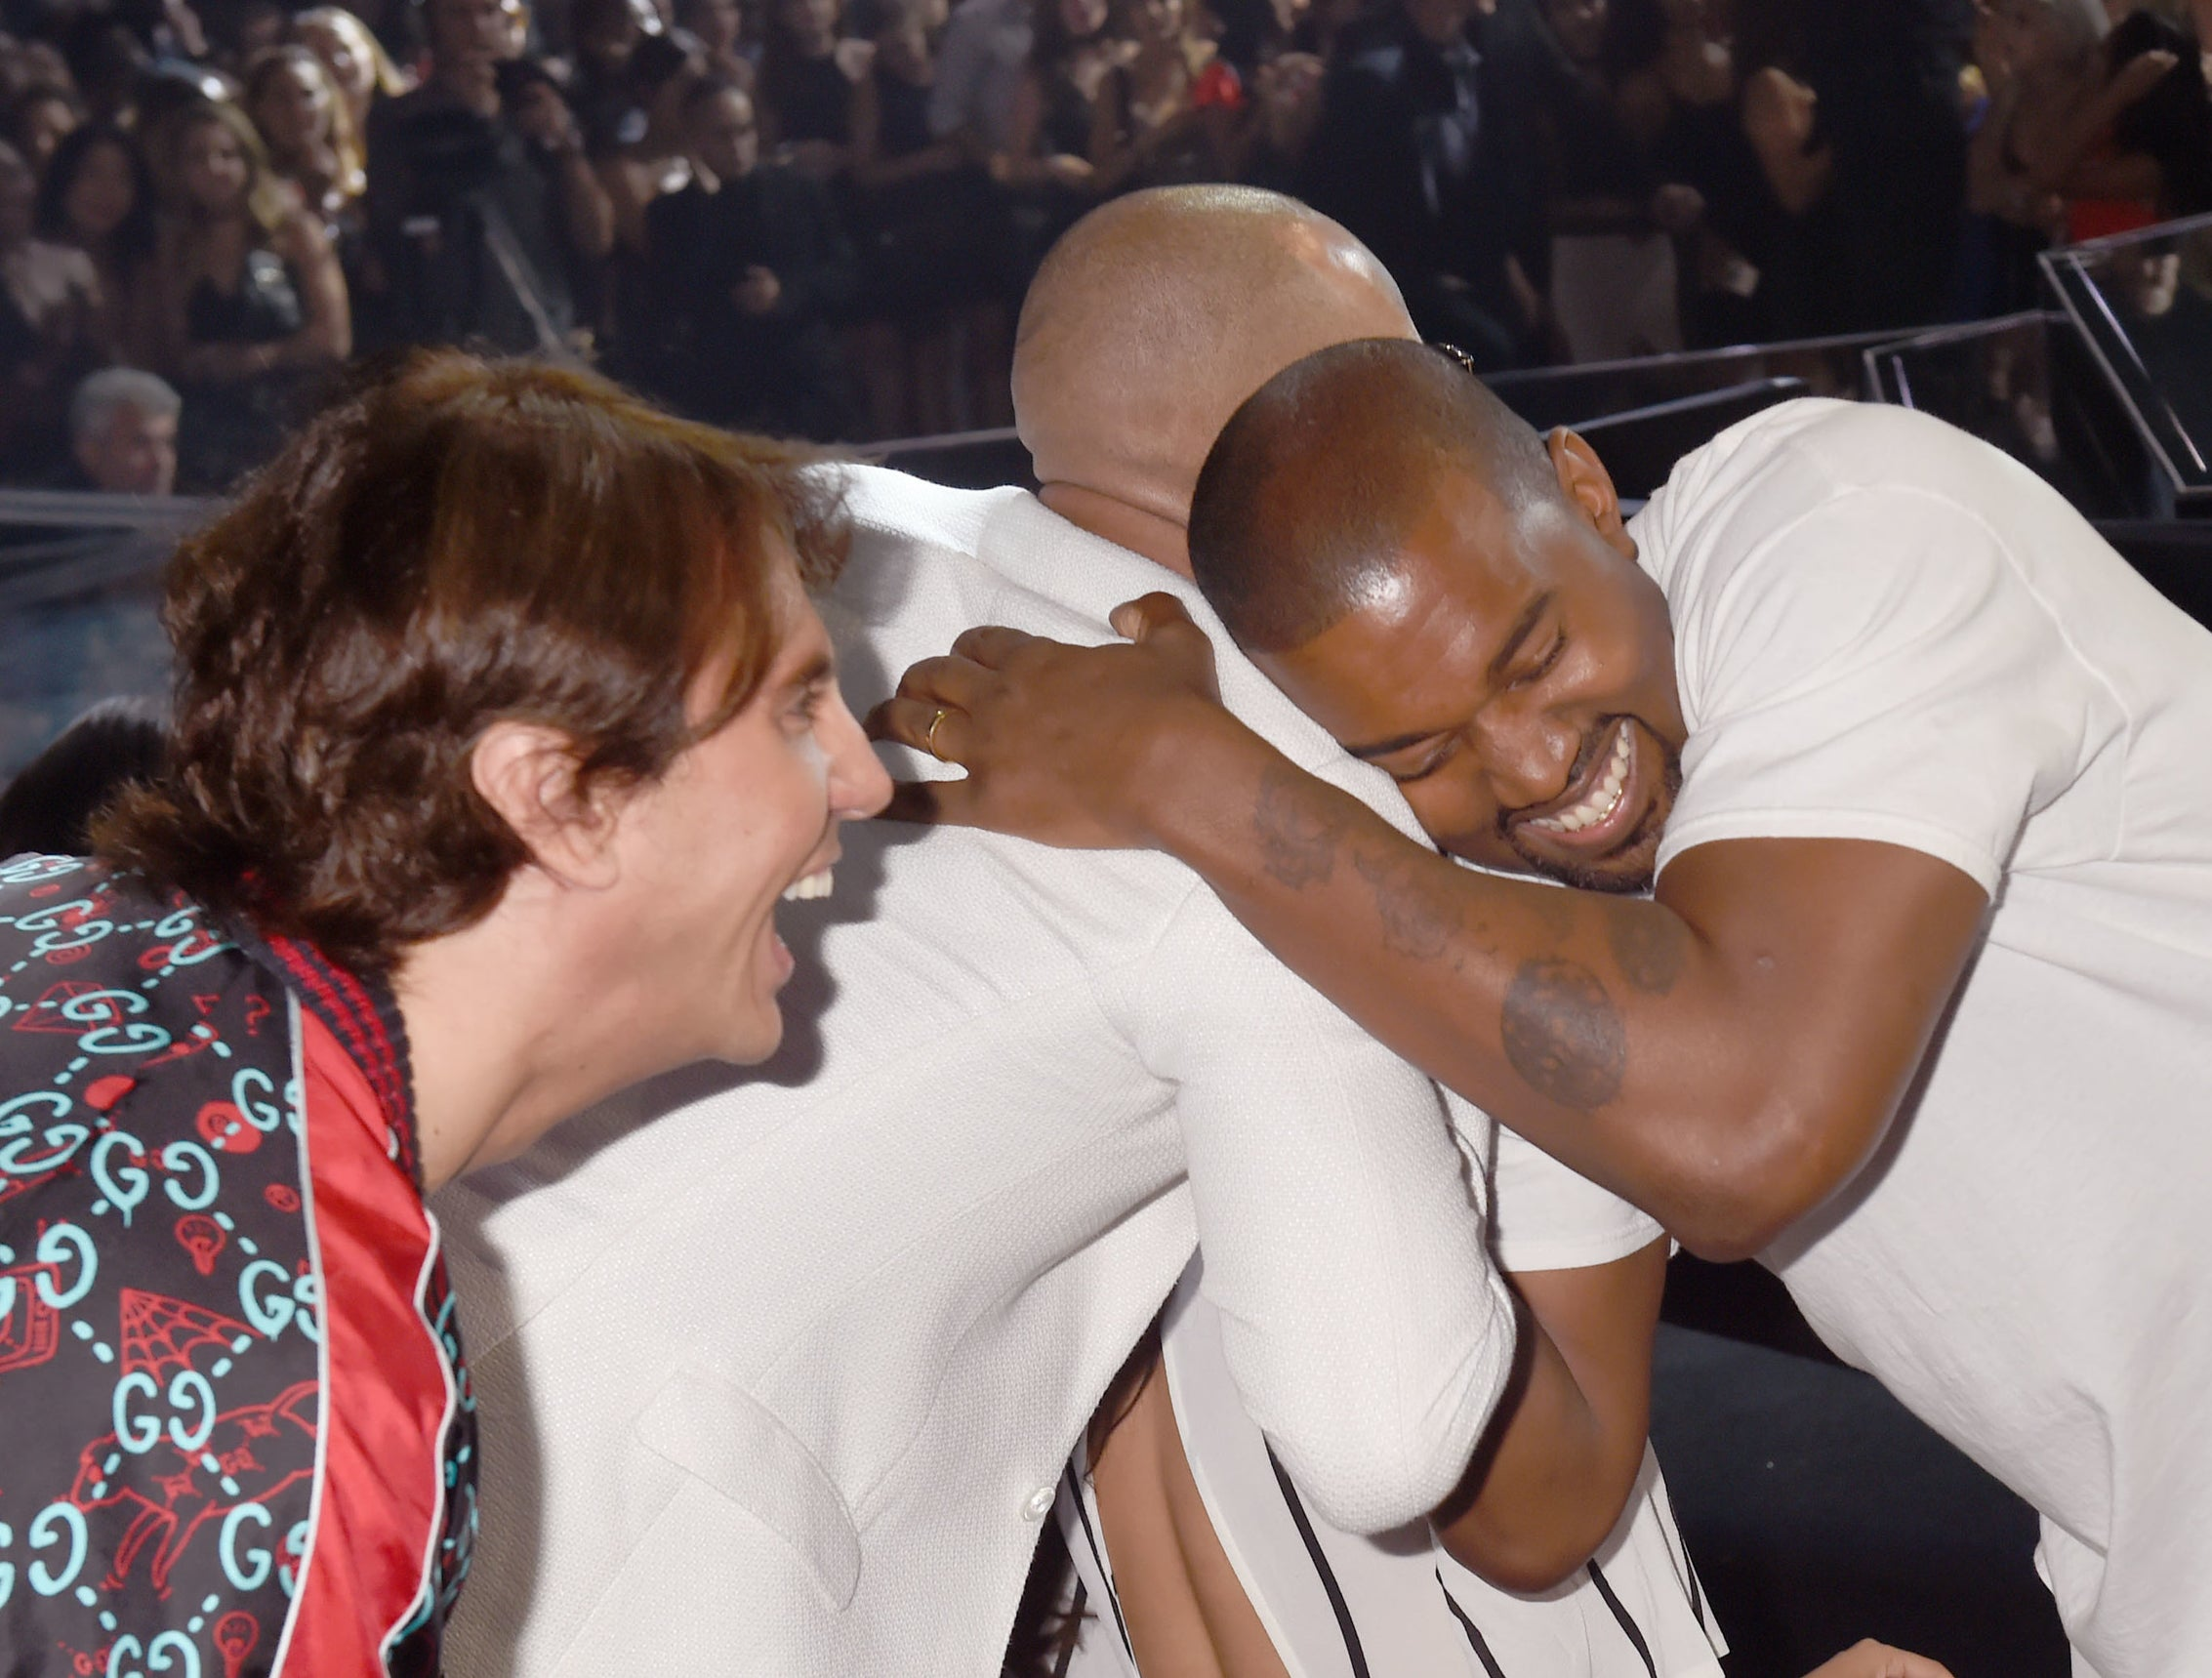 Jonathan leans over and smiles while Kanye hugs another friend